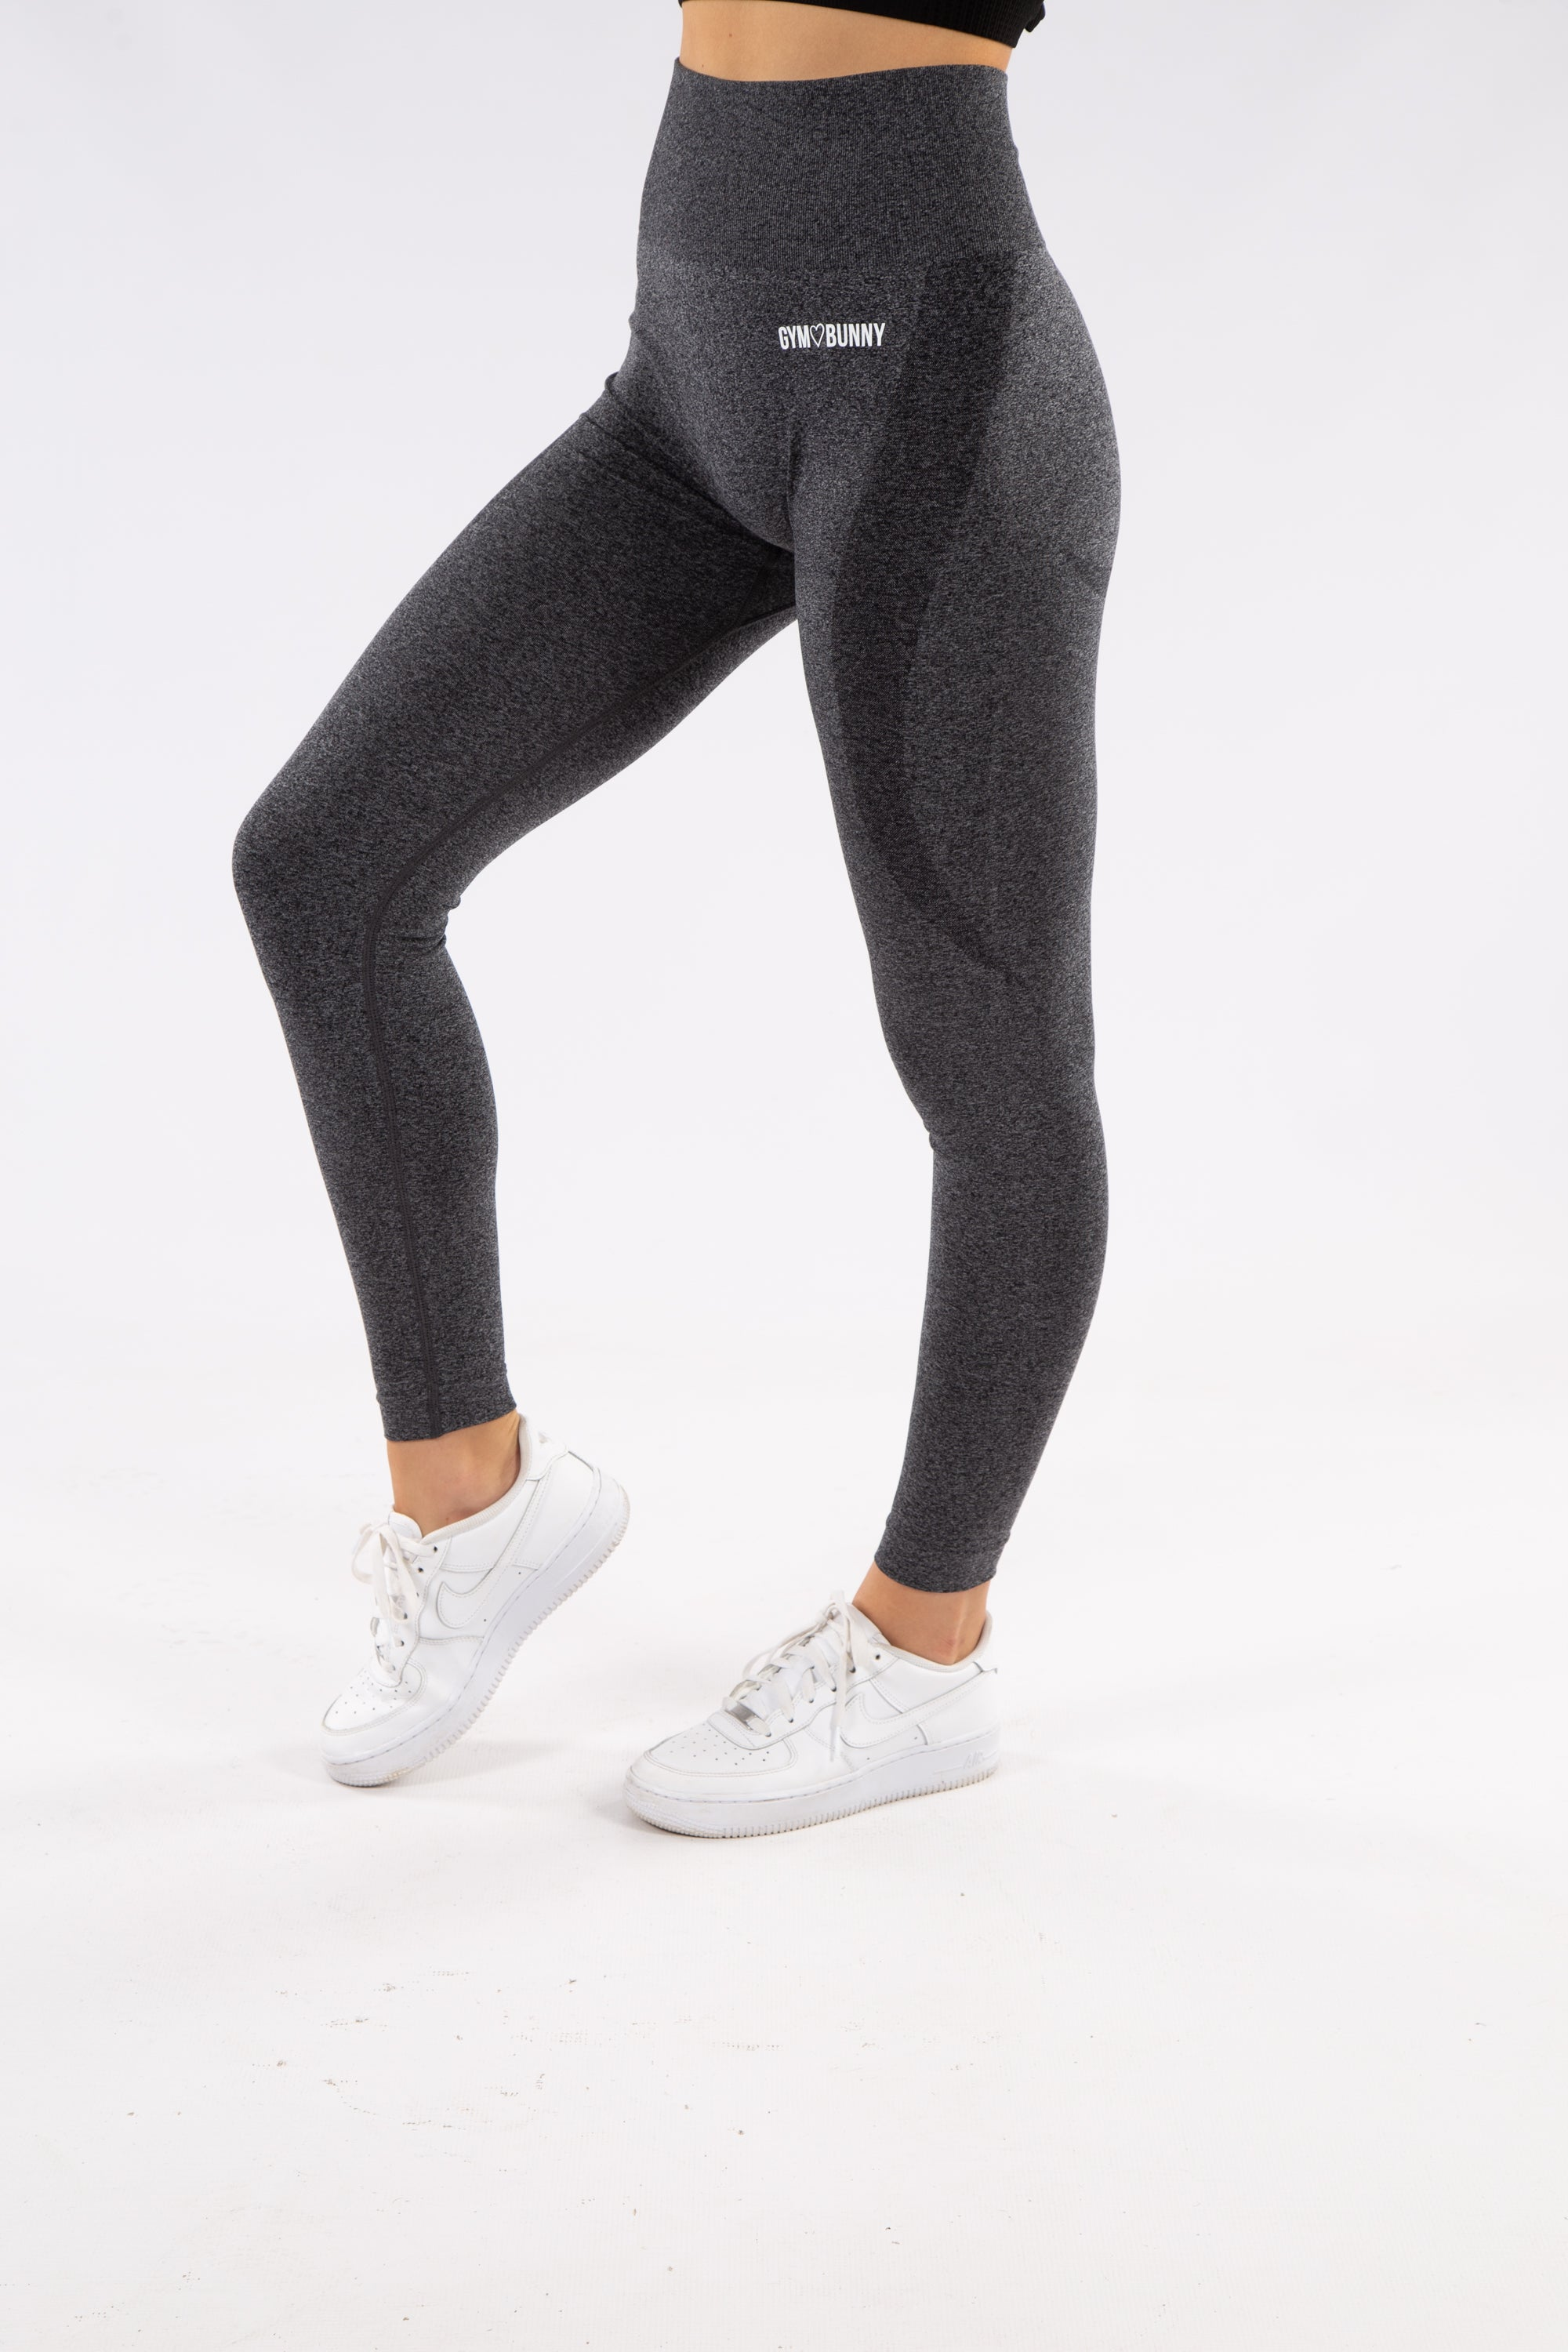 Image of Gymbunny Contour Seamless leggings- Dark Grey